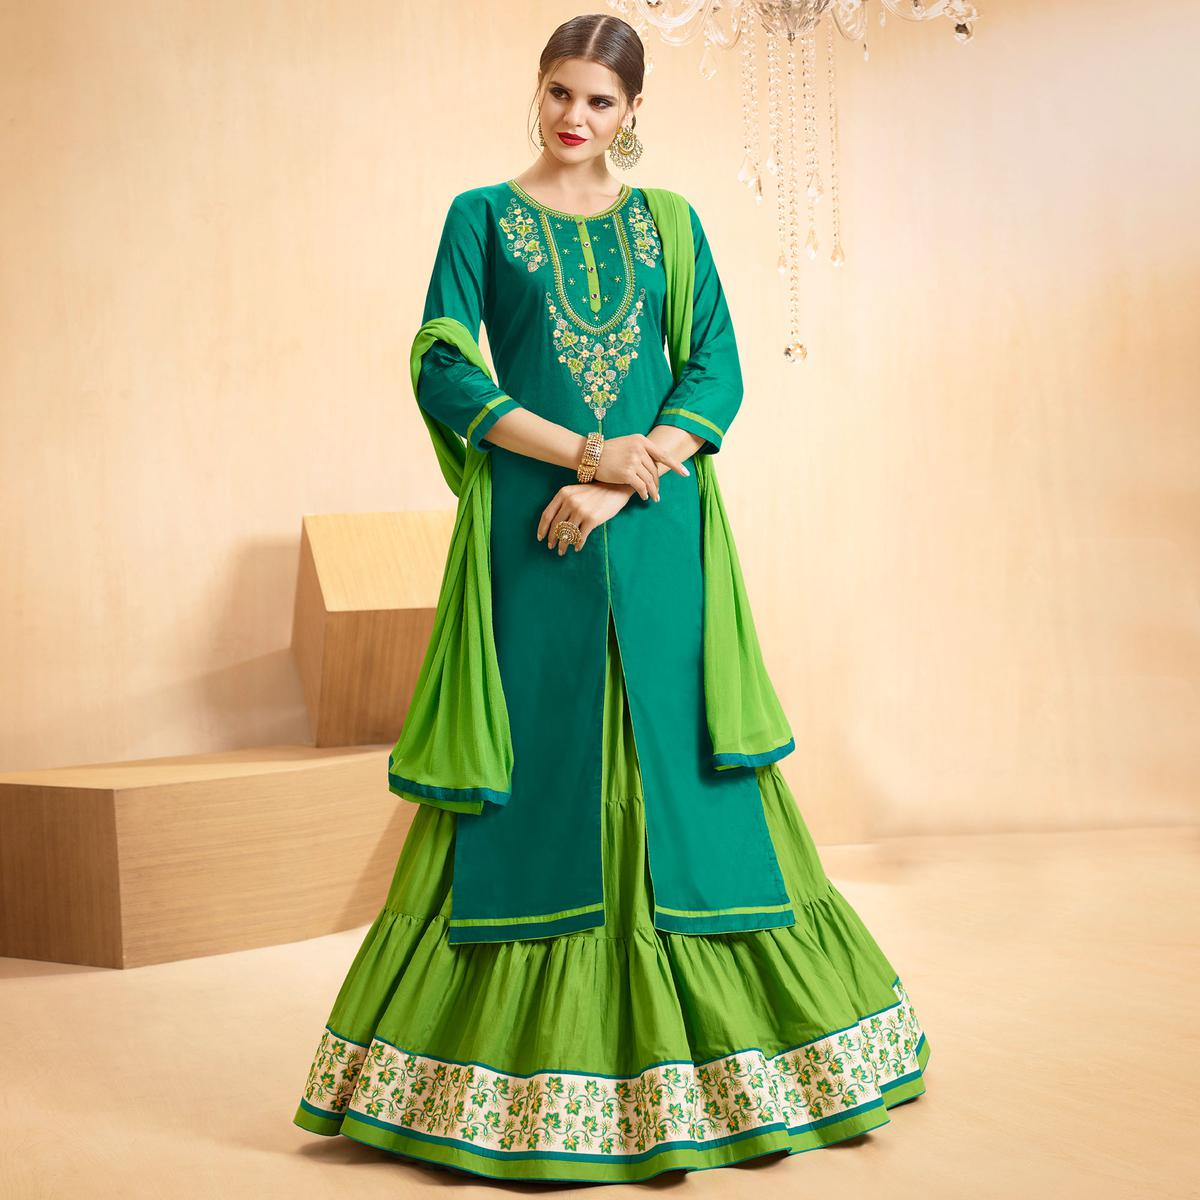 Teal Blue - Green Colored Embroidered Cotton Lehenga Kameez